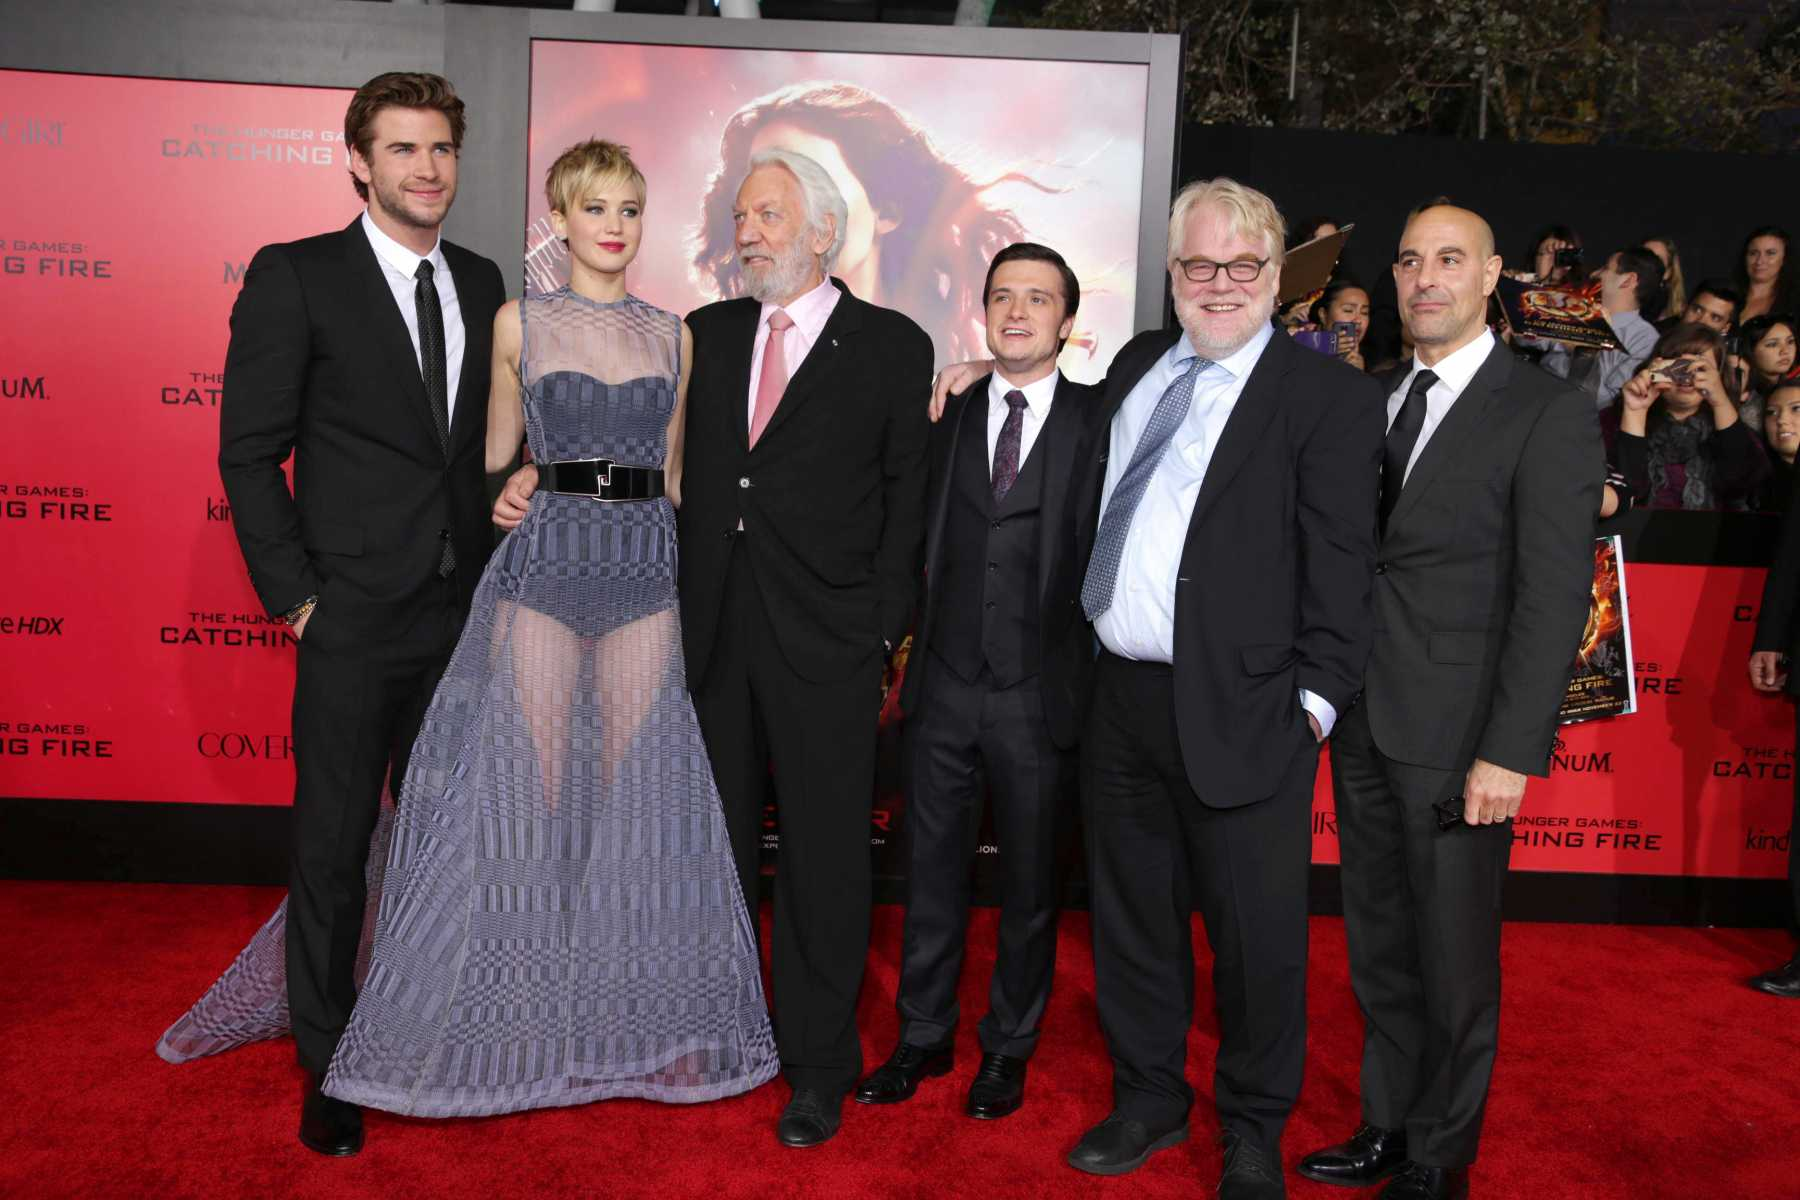 The Hunger Games Family Grieves For One Of Their Own